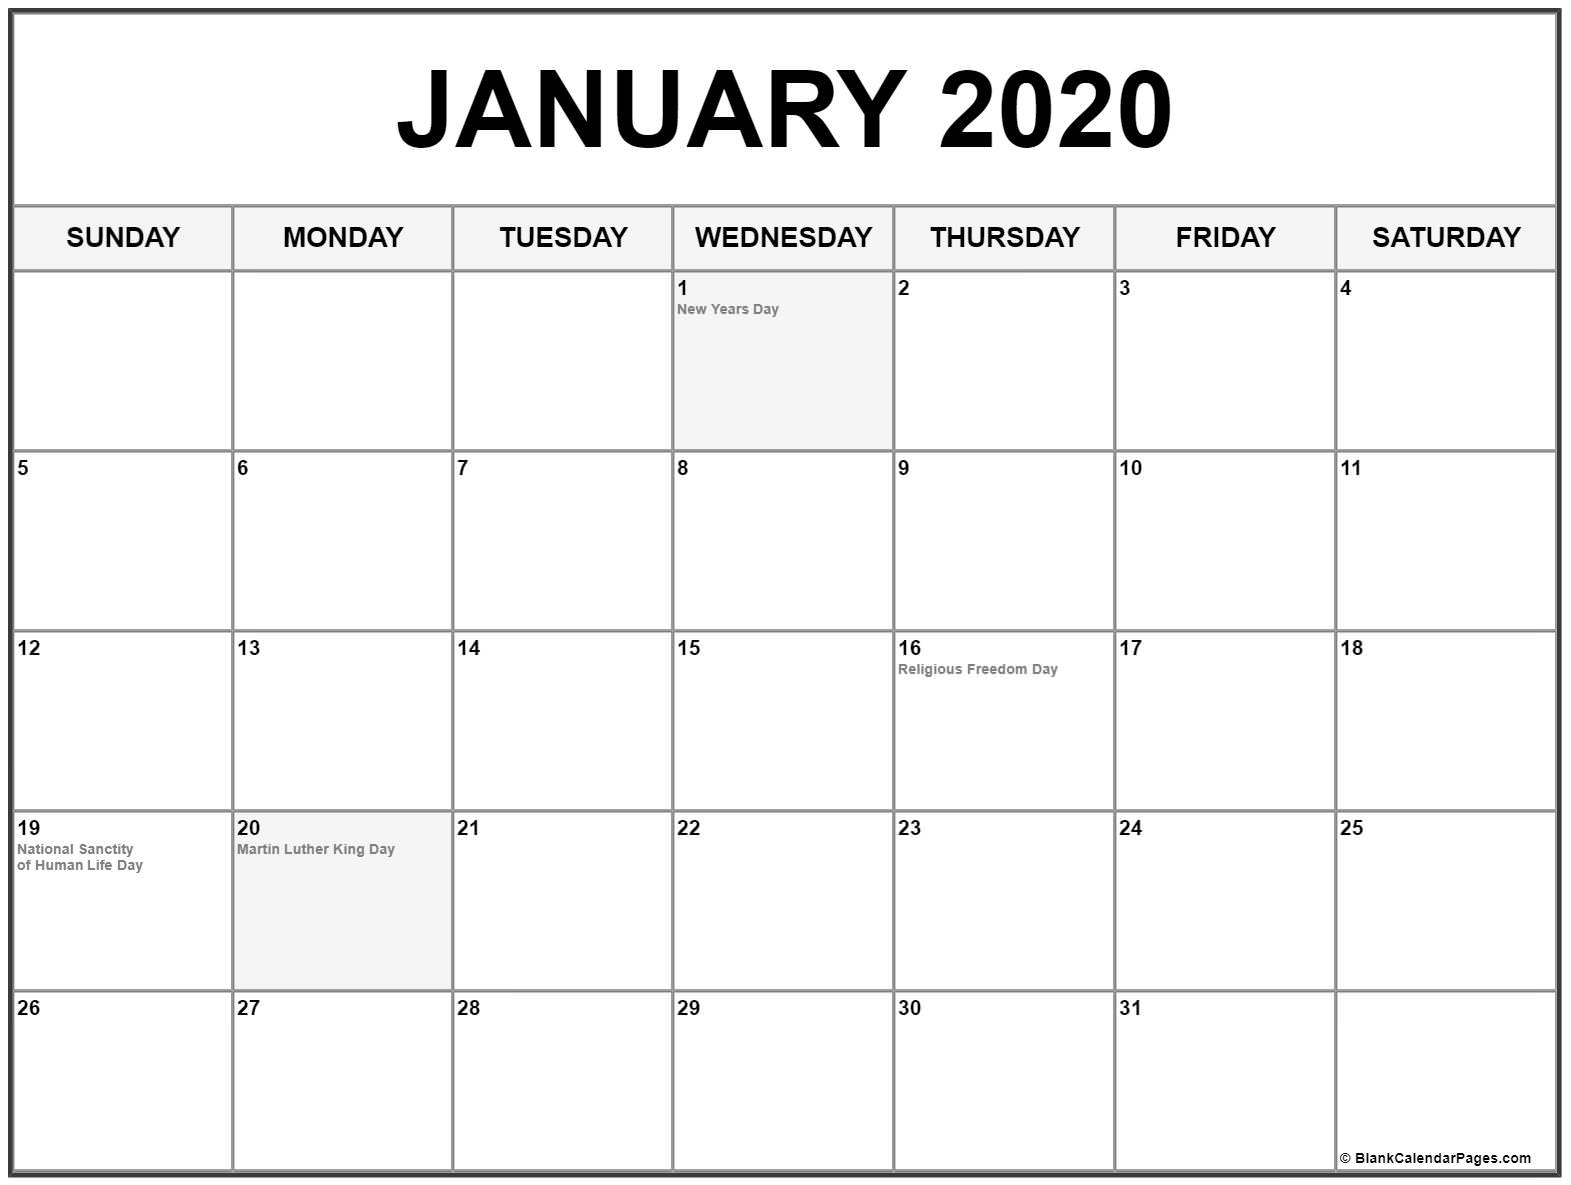 Collection Of January 2020 Calendars With Holidays with regard to Jan 2020 Holiday